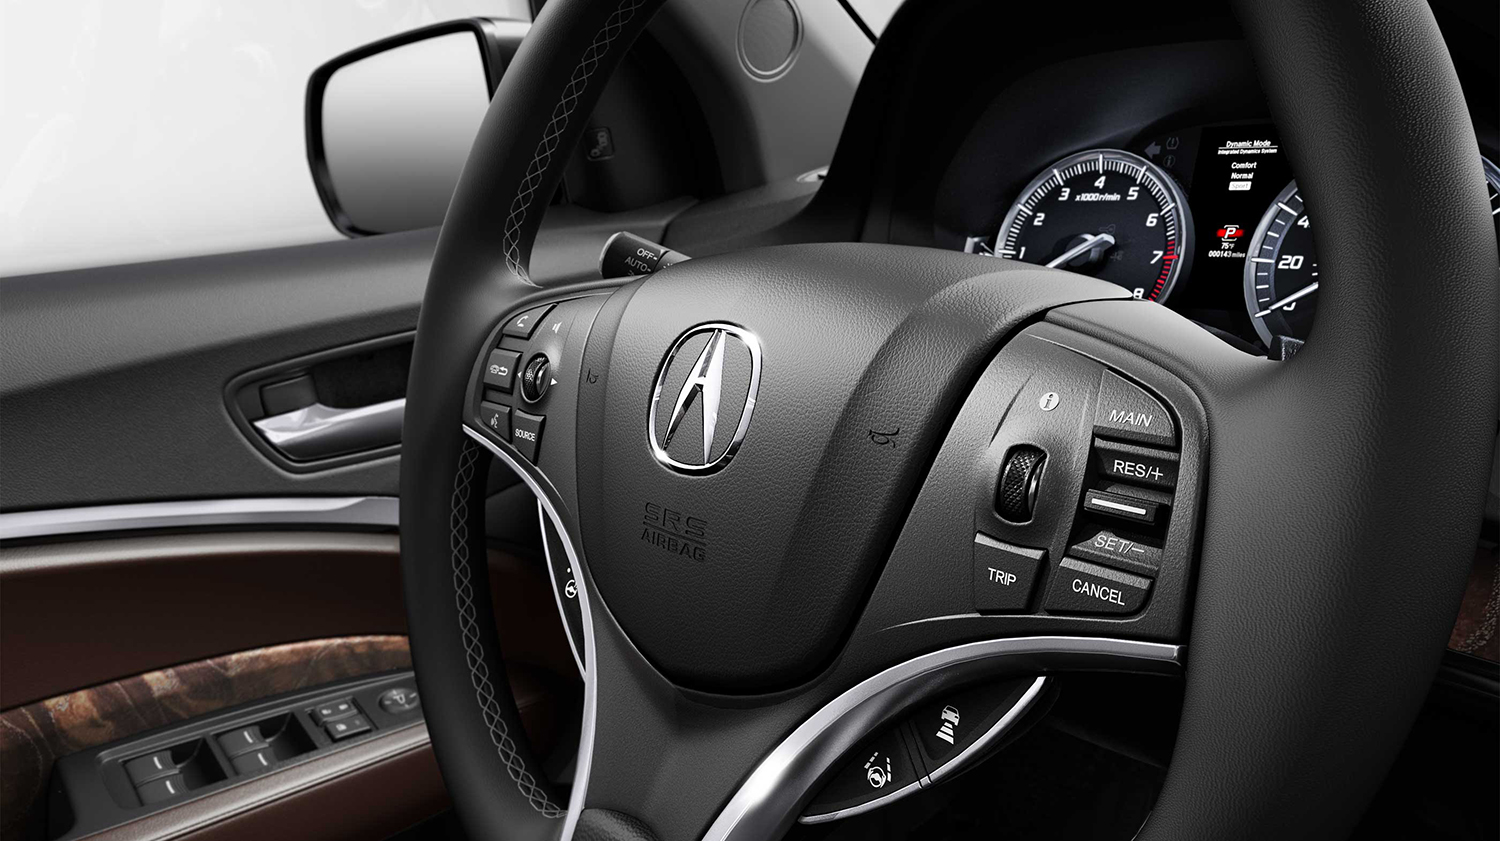 2017 Acura MDX Steering Wheel Controls